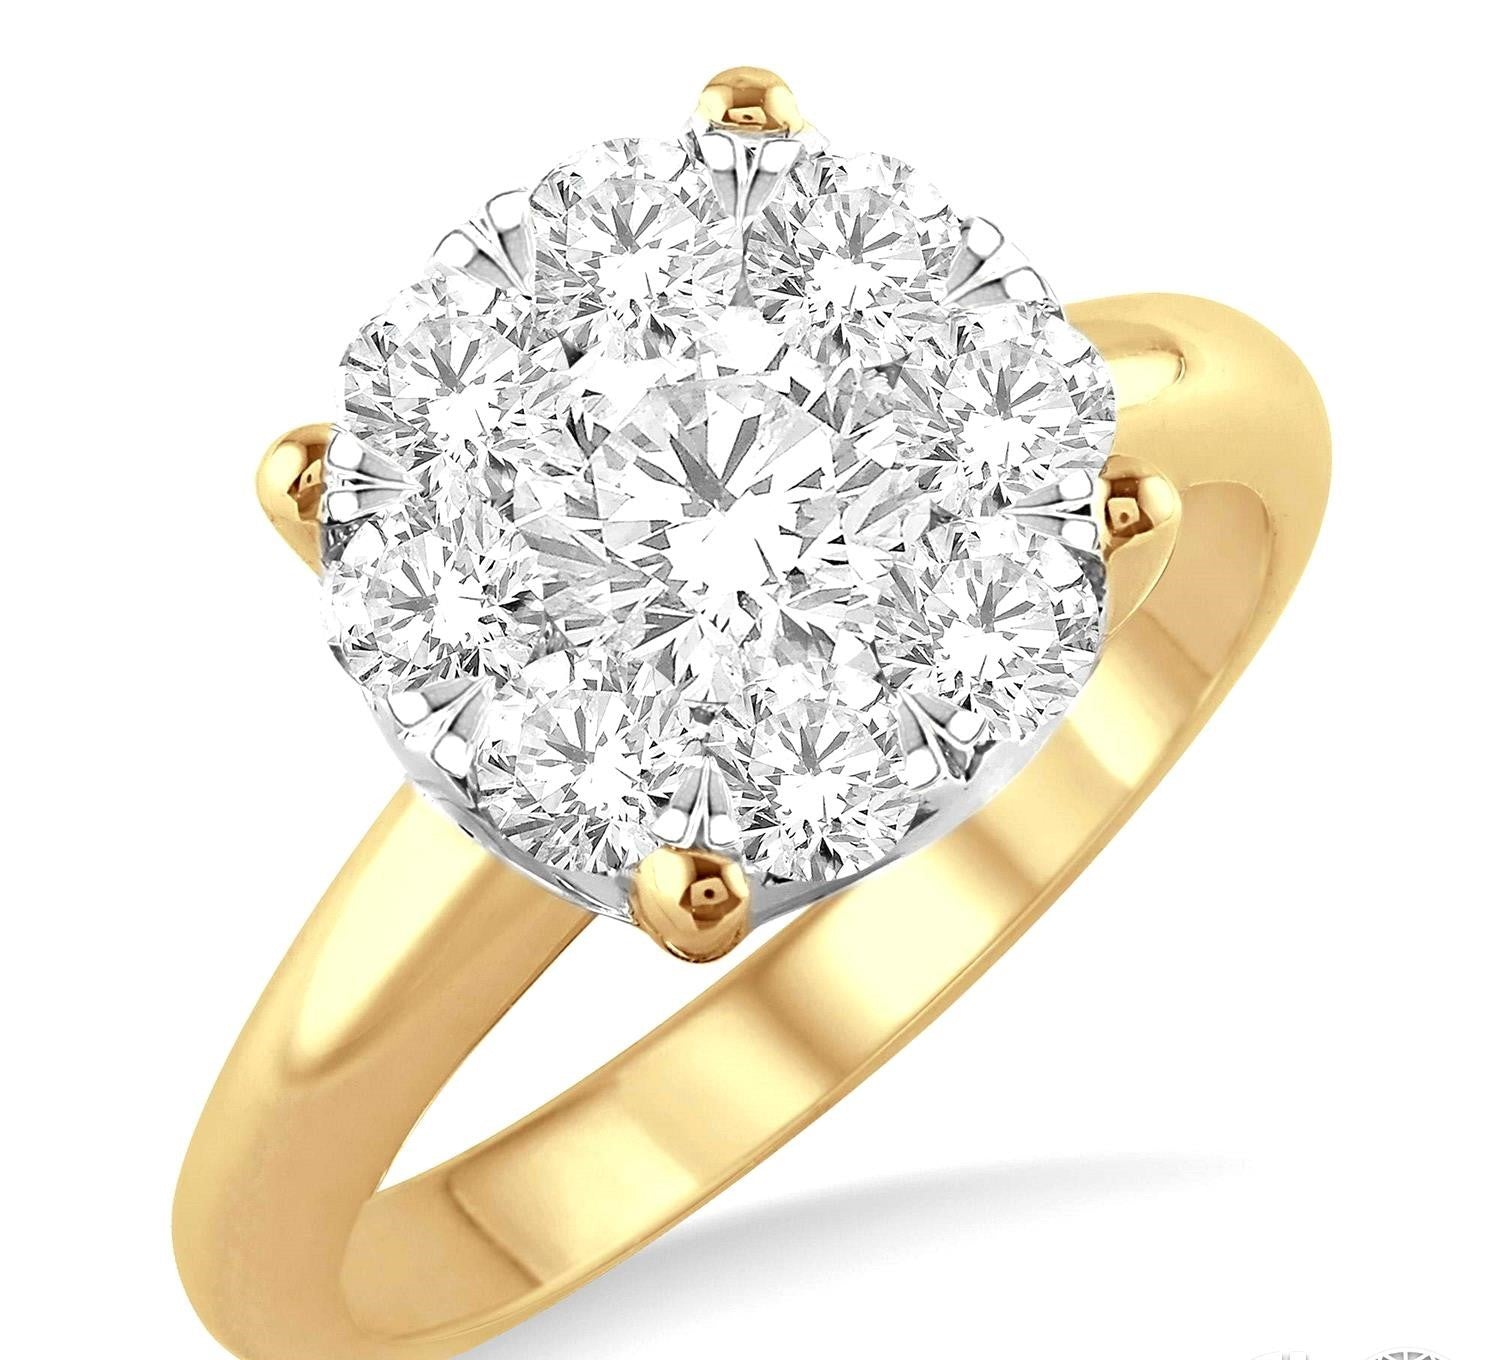 2 Ctw Lovebright Round Cut Diamond Ring in 14K Yellow and White Gold